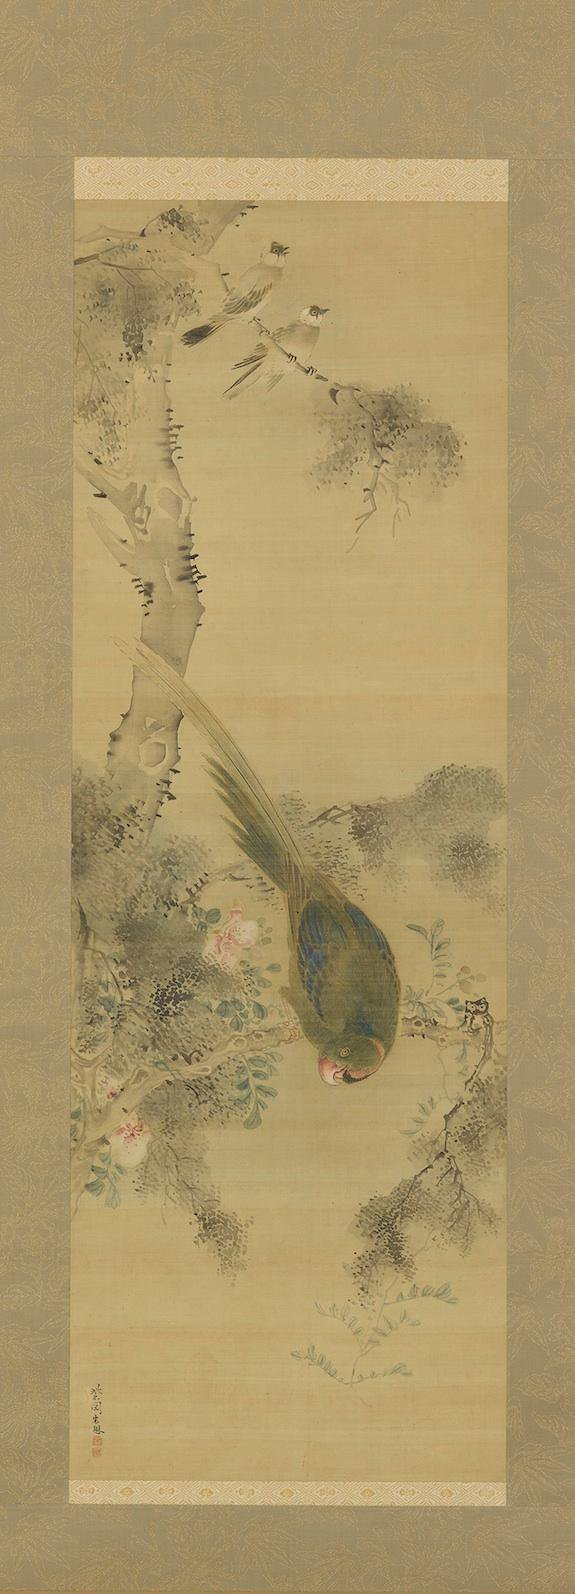 Birds and Bards: Beautiful Japanese Images from the Edo Period